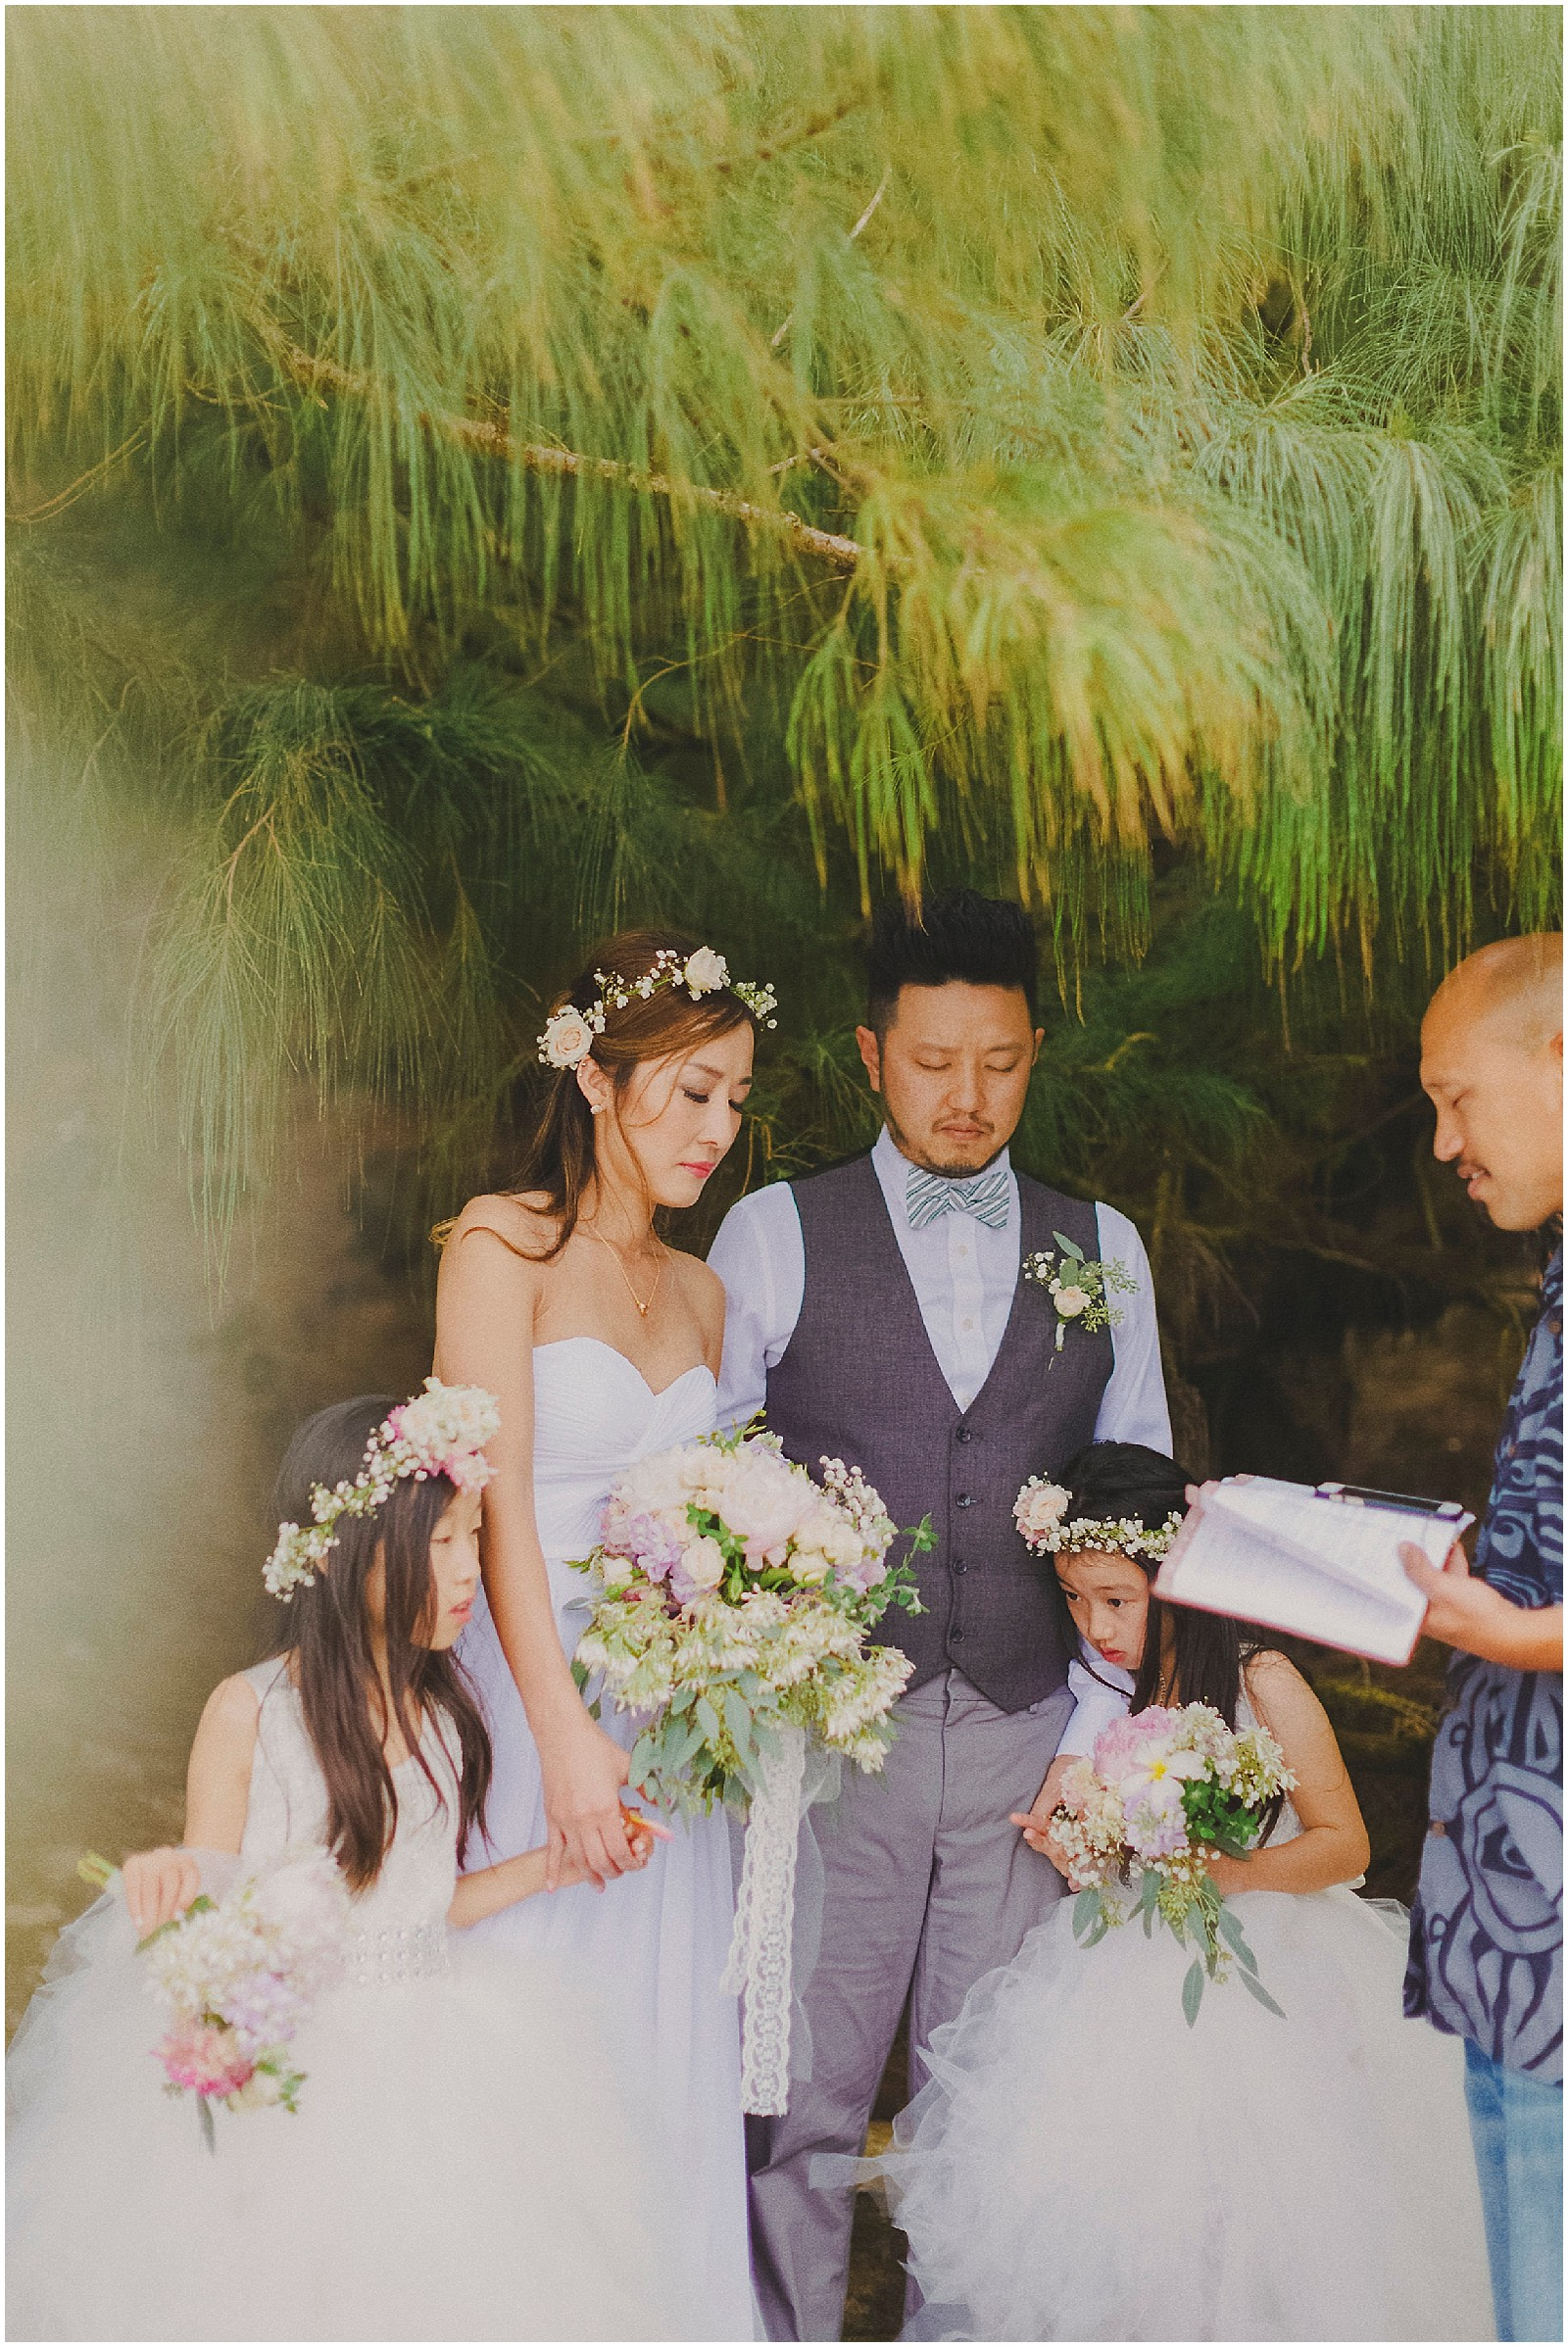 ten-year-vow-renewal-wedding_0005